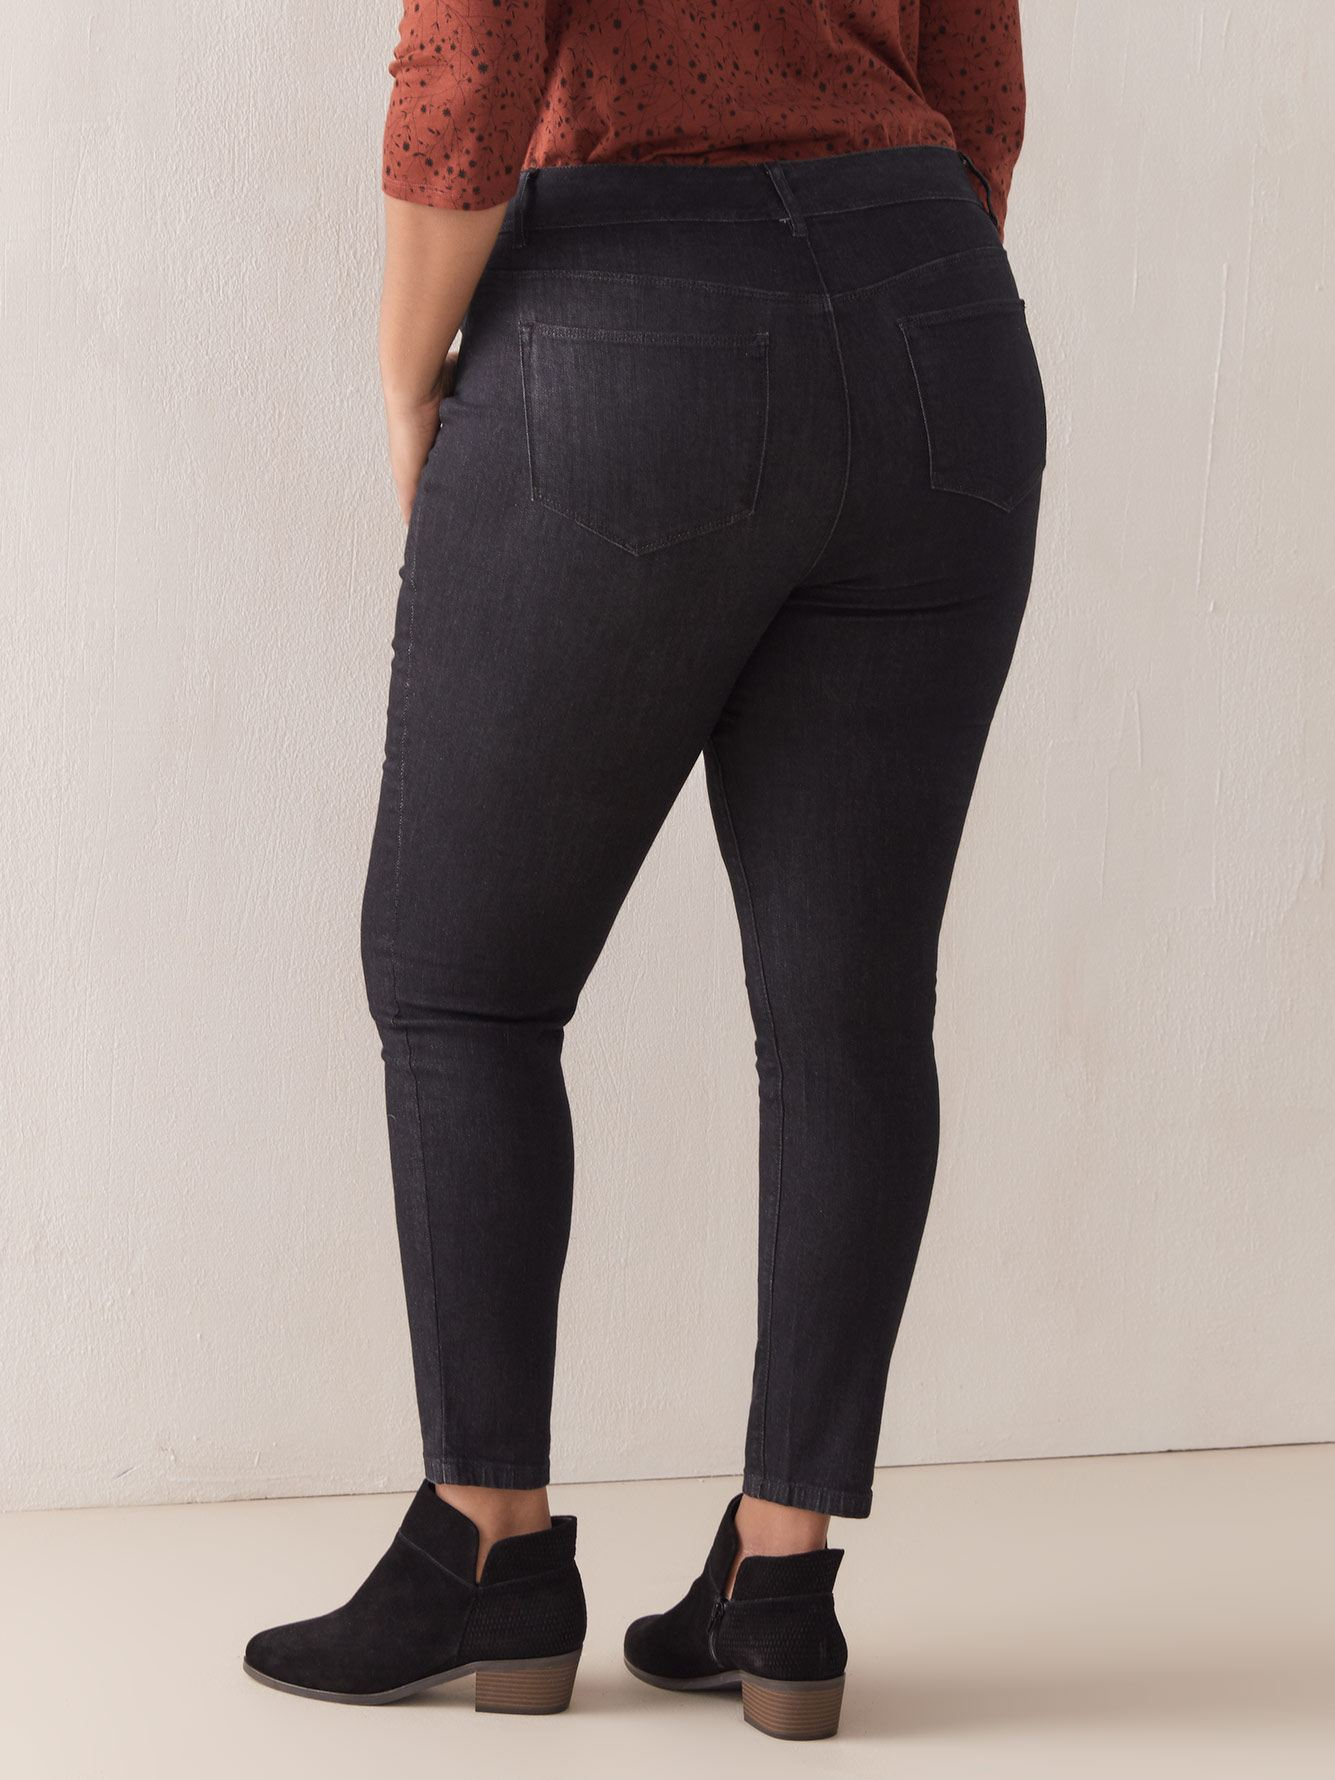 Universal Fit, Ultra-Stretchy Black Jegging - d/C JEANS